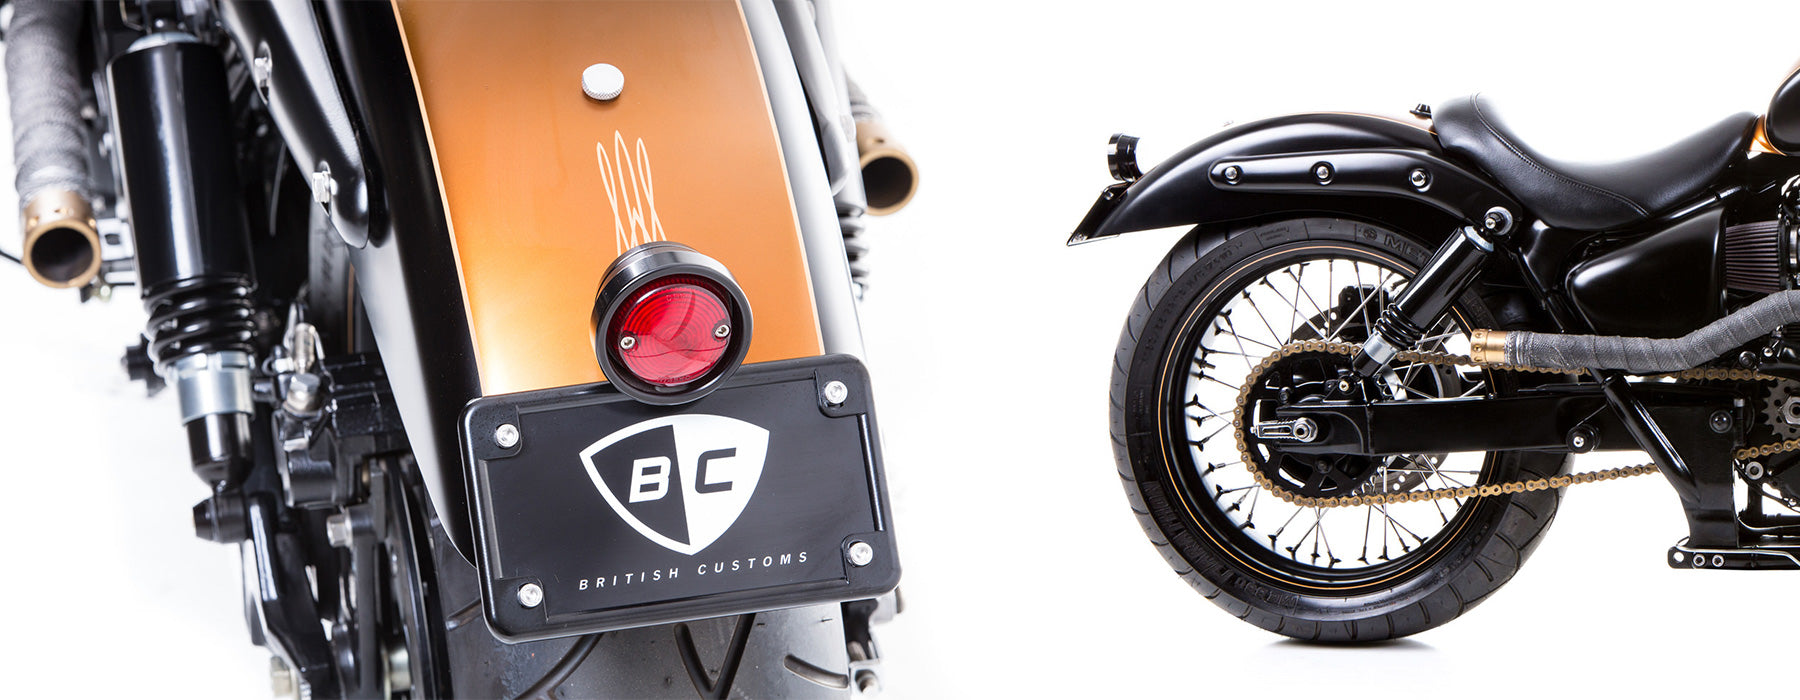 British Customs LED Pan Tail Light for Triumph America and Speedmaster